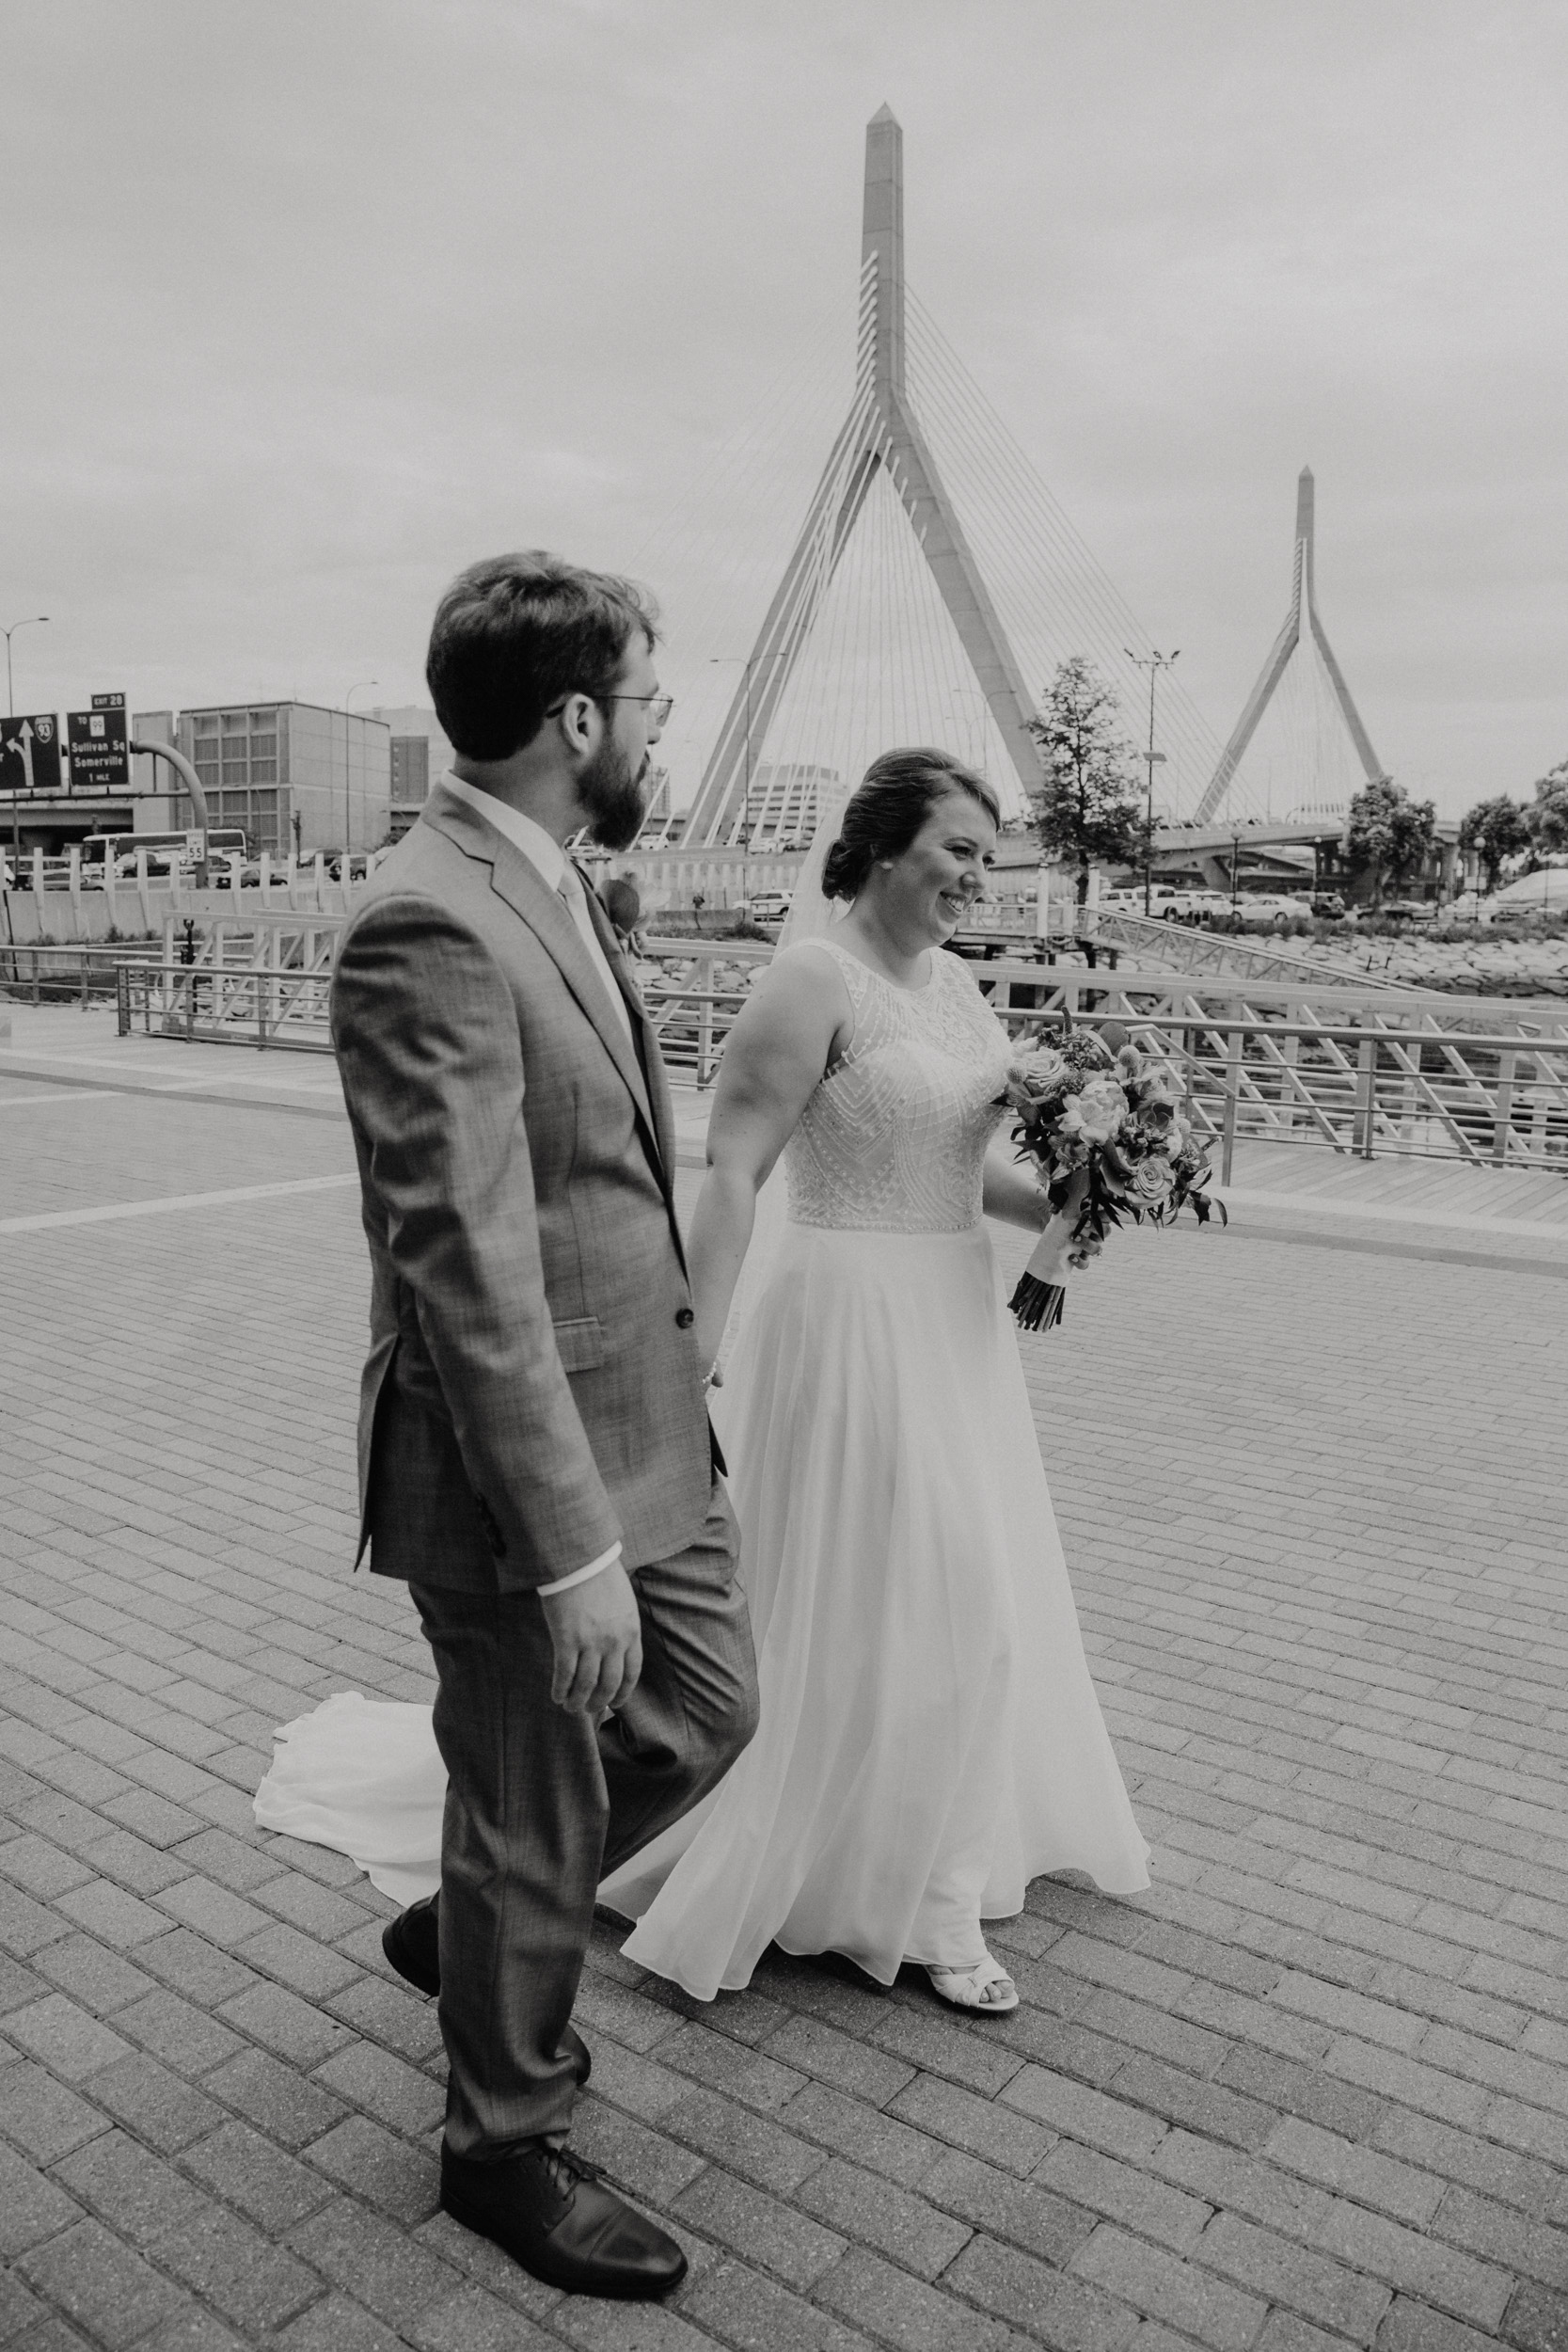 Bride and groom walk hand in hand at Lovejoy Wharf in Boston with the Zakim Bridge in the background